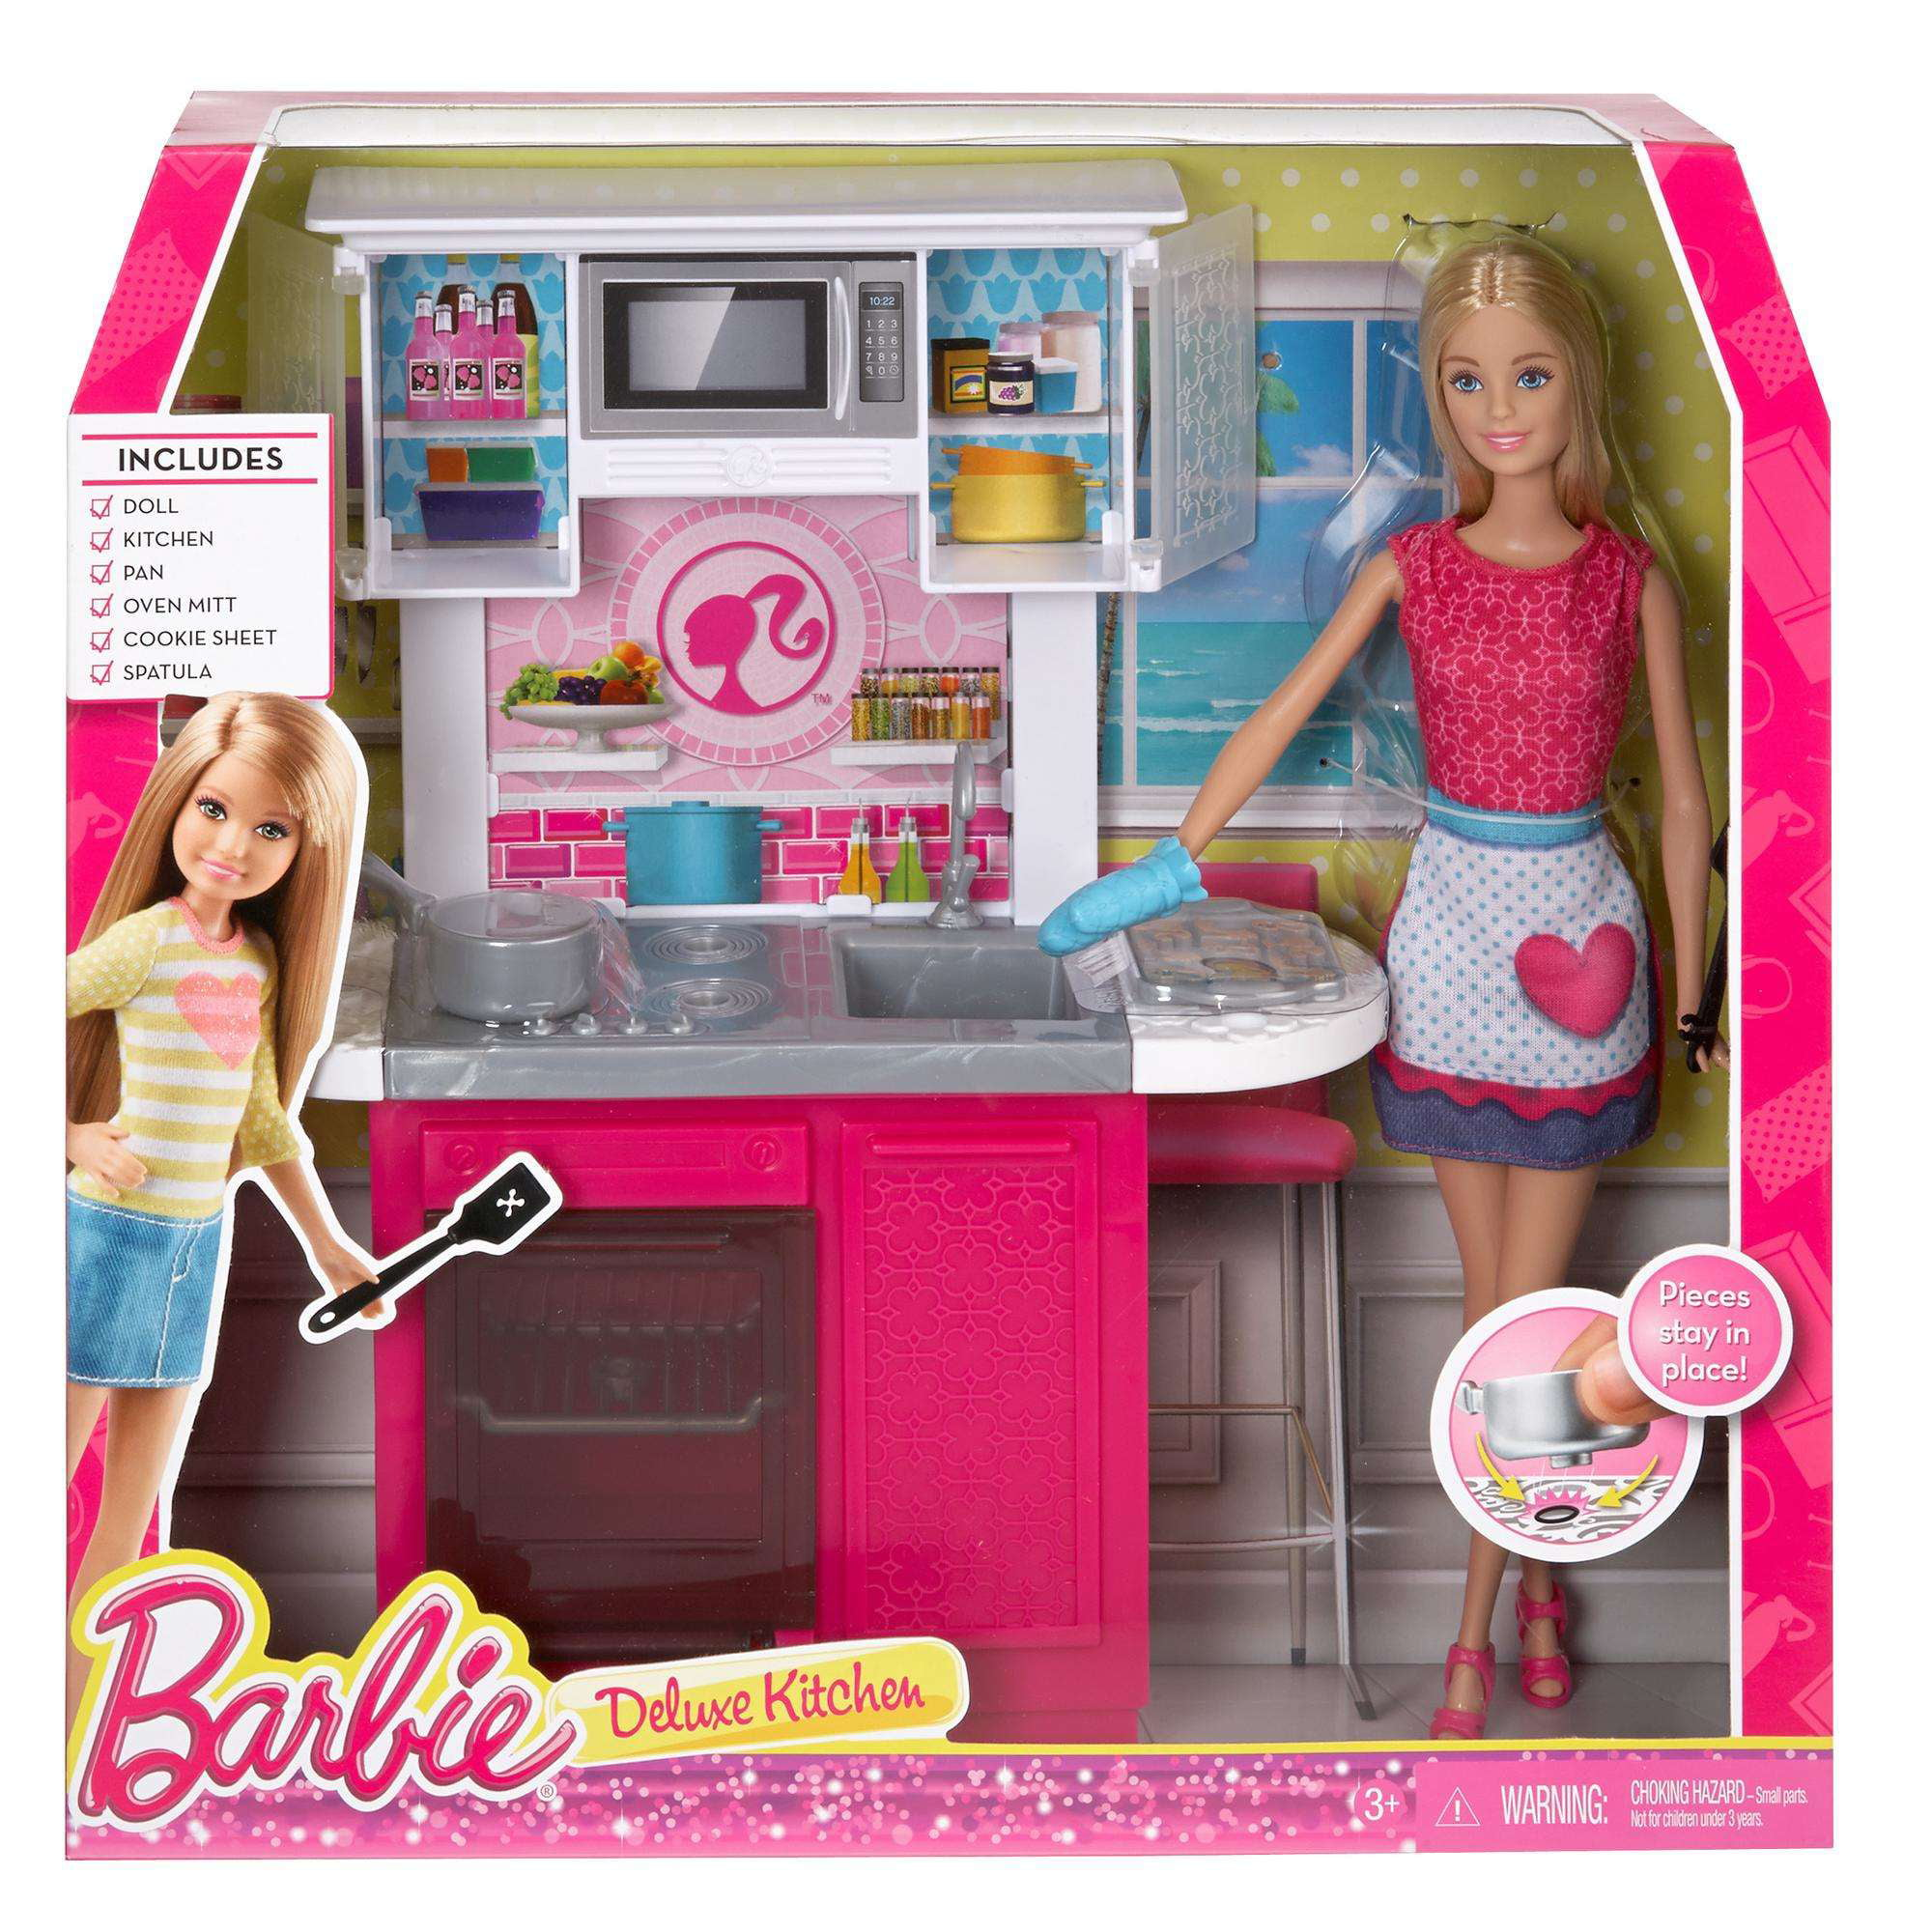 Barbie Deluxe Kitchen And Doll Walmart Com